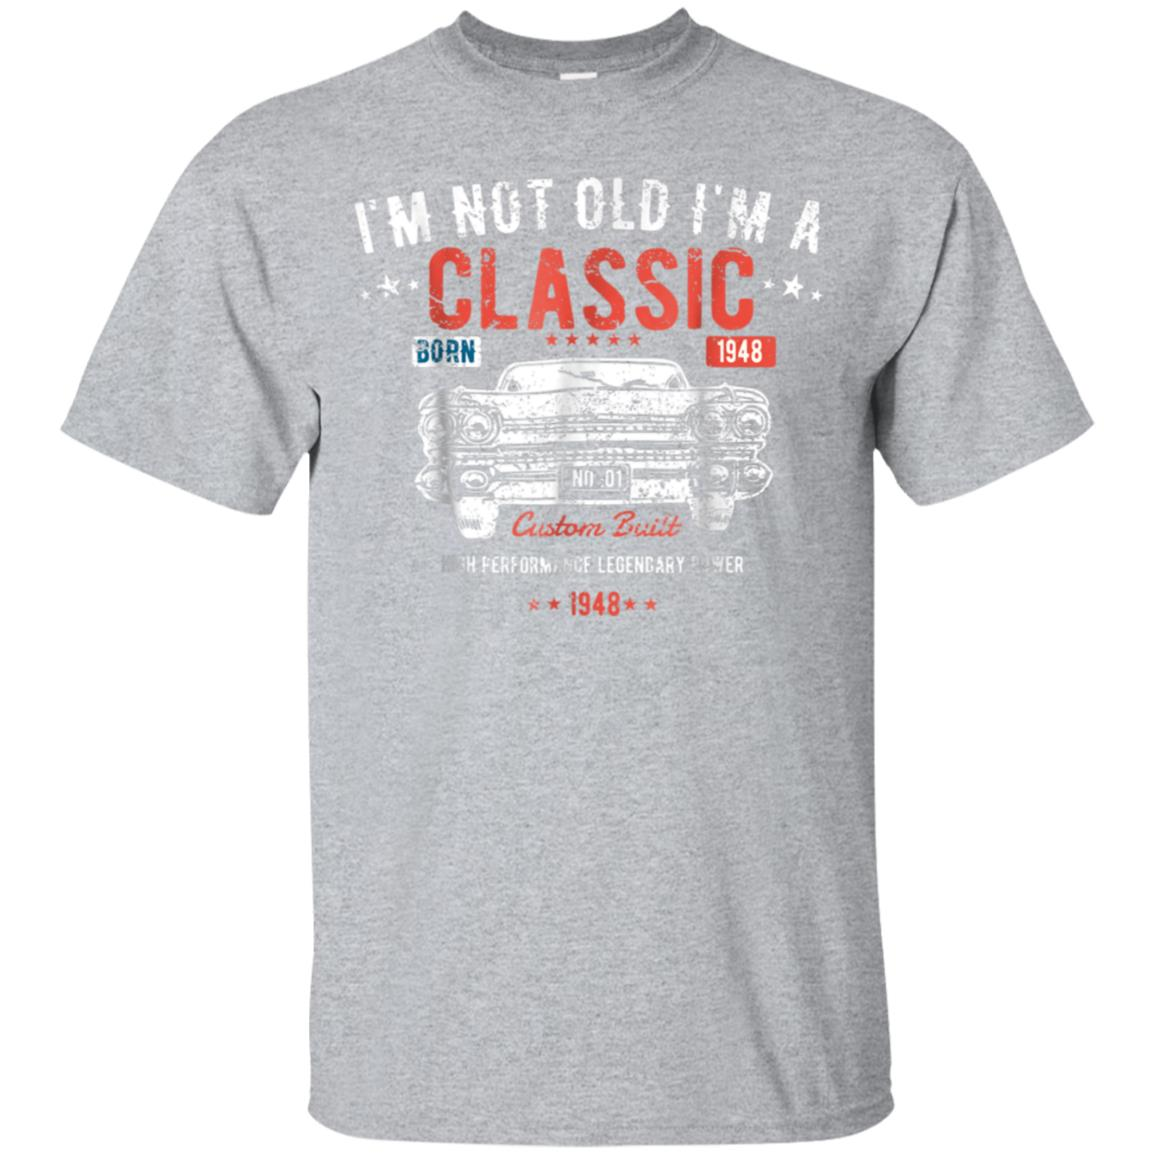 Funny 70th Birthday T Shirt I'm Not Old I'm a Classic 1948 99promocode